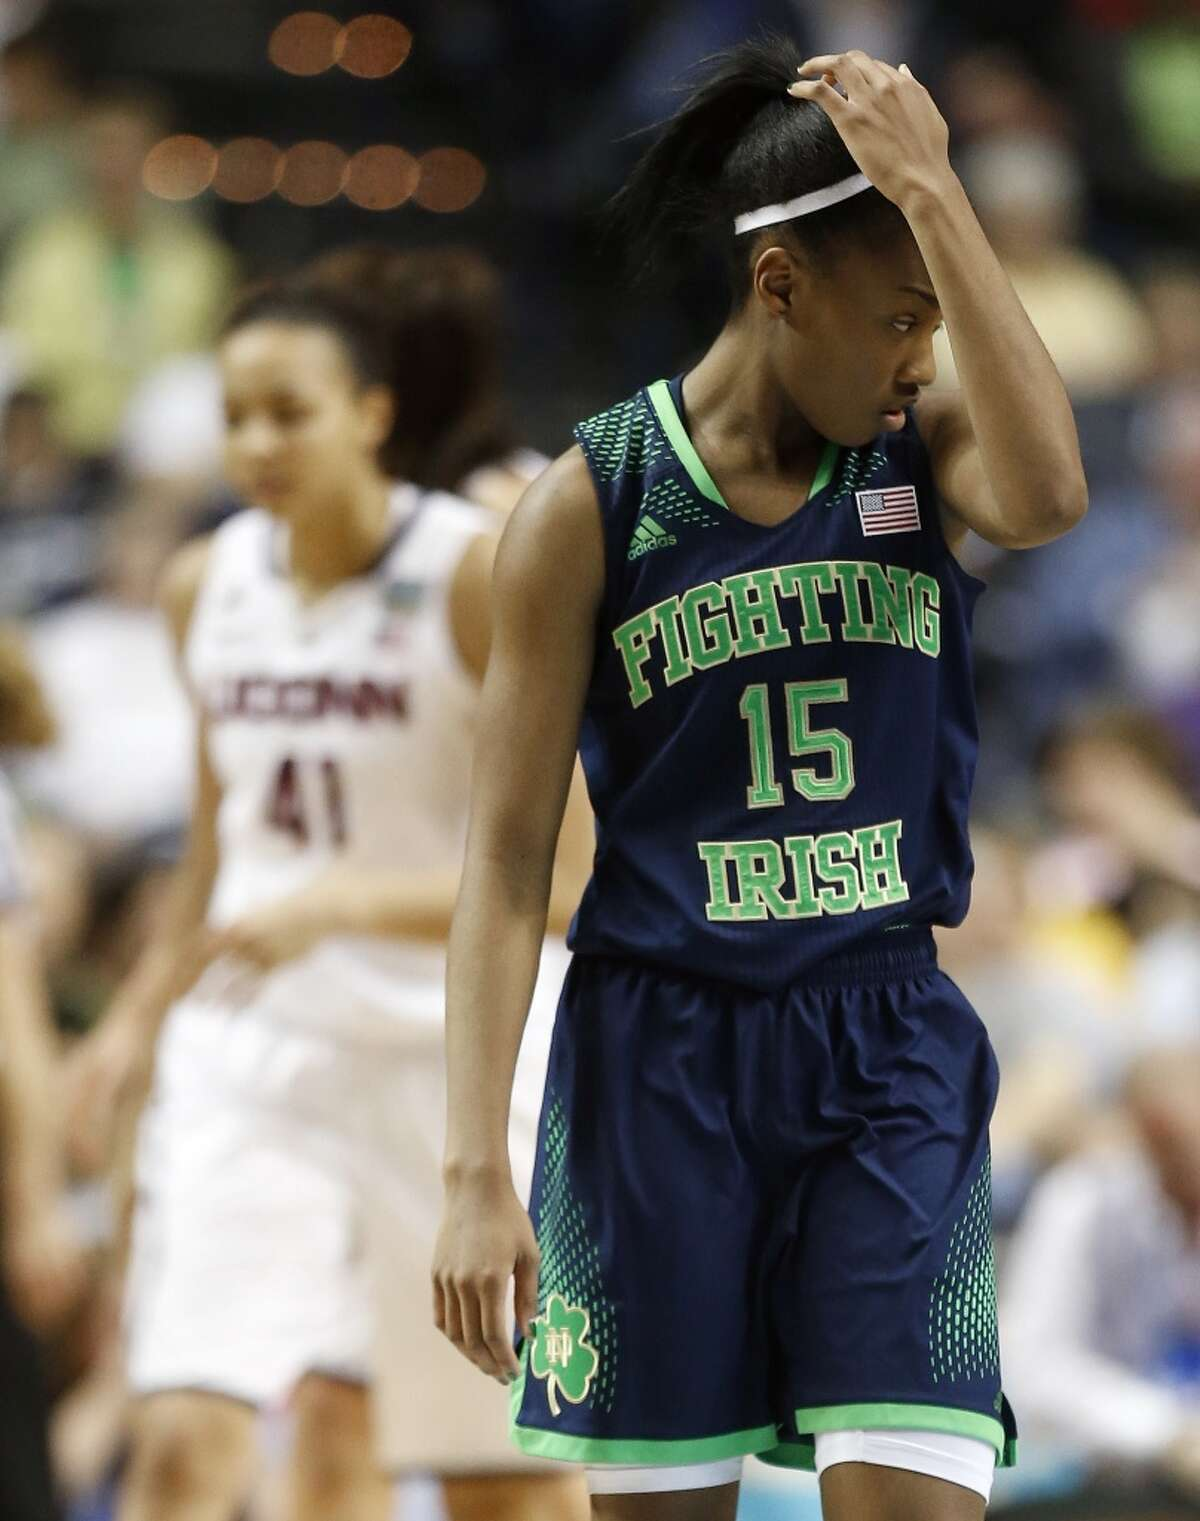 Notre Dame guard Lindsay Allen (15) walks off the court during the second half of the championship game against Connecticut in the Final Four of the NCAA women's college basketball tournament, Tuesday, April 8, 2014, in Nashville, Tenn. (AP Photo/John Bazemore)